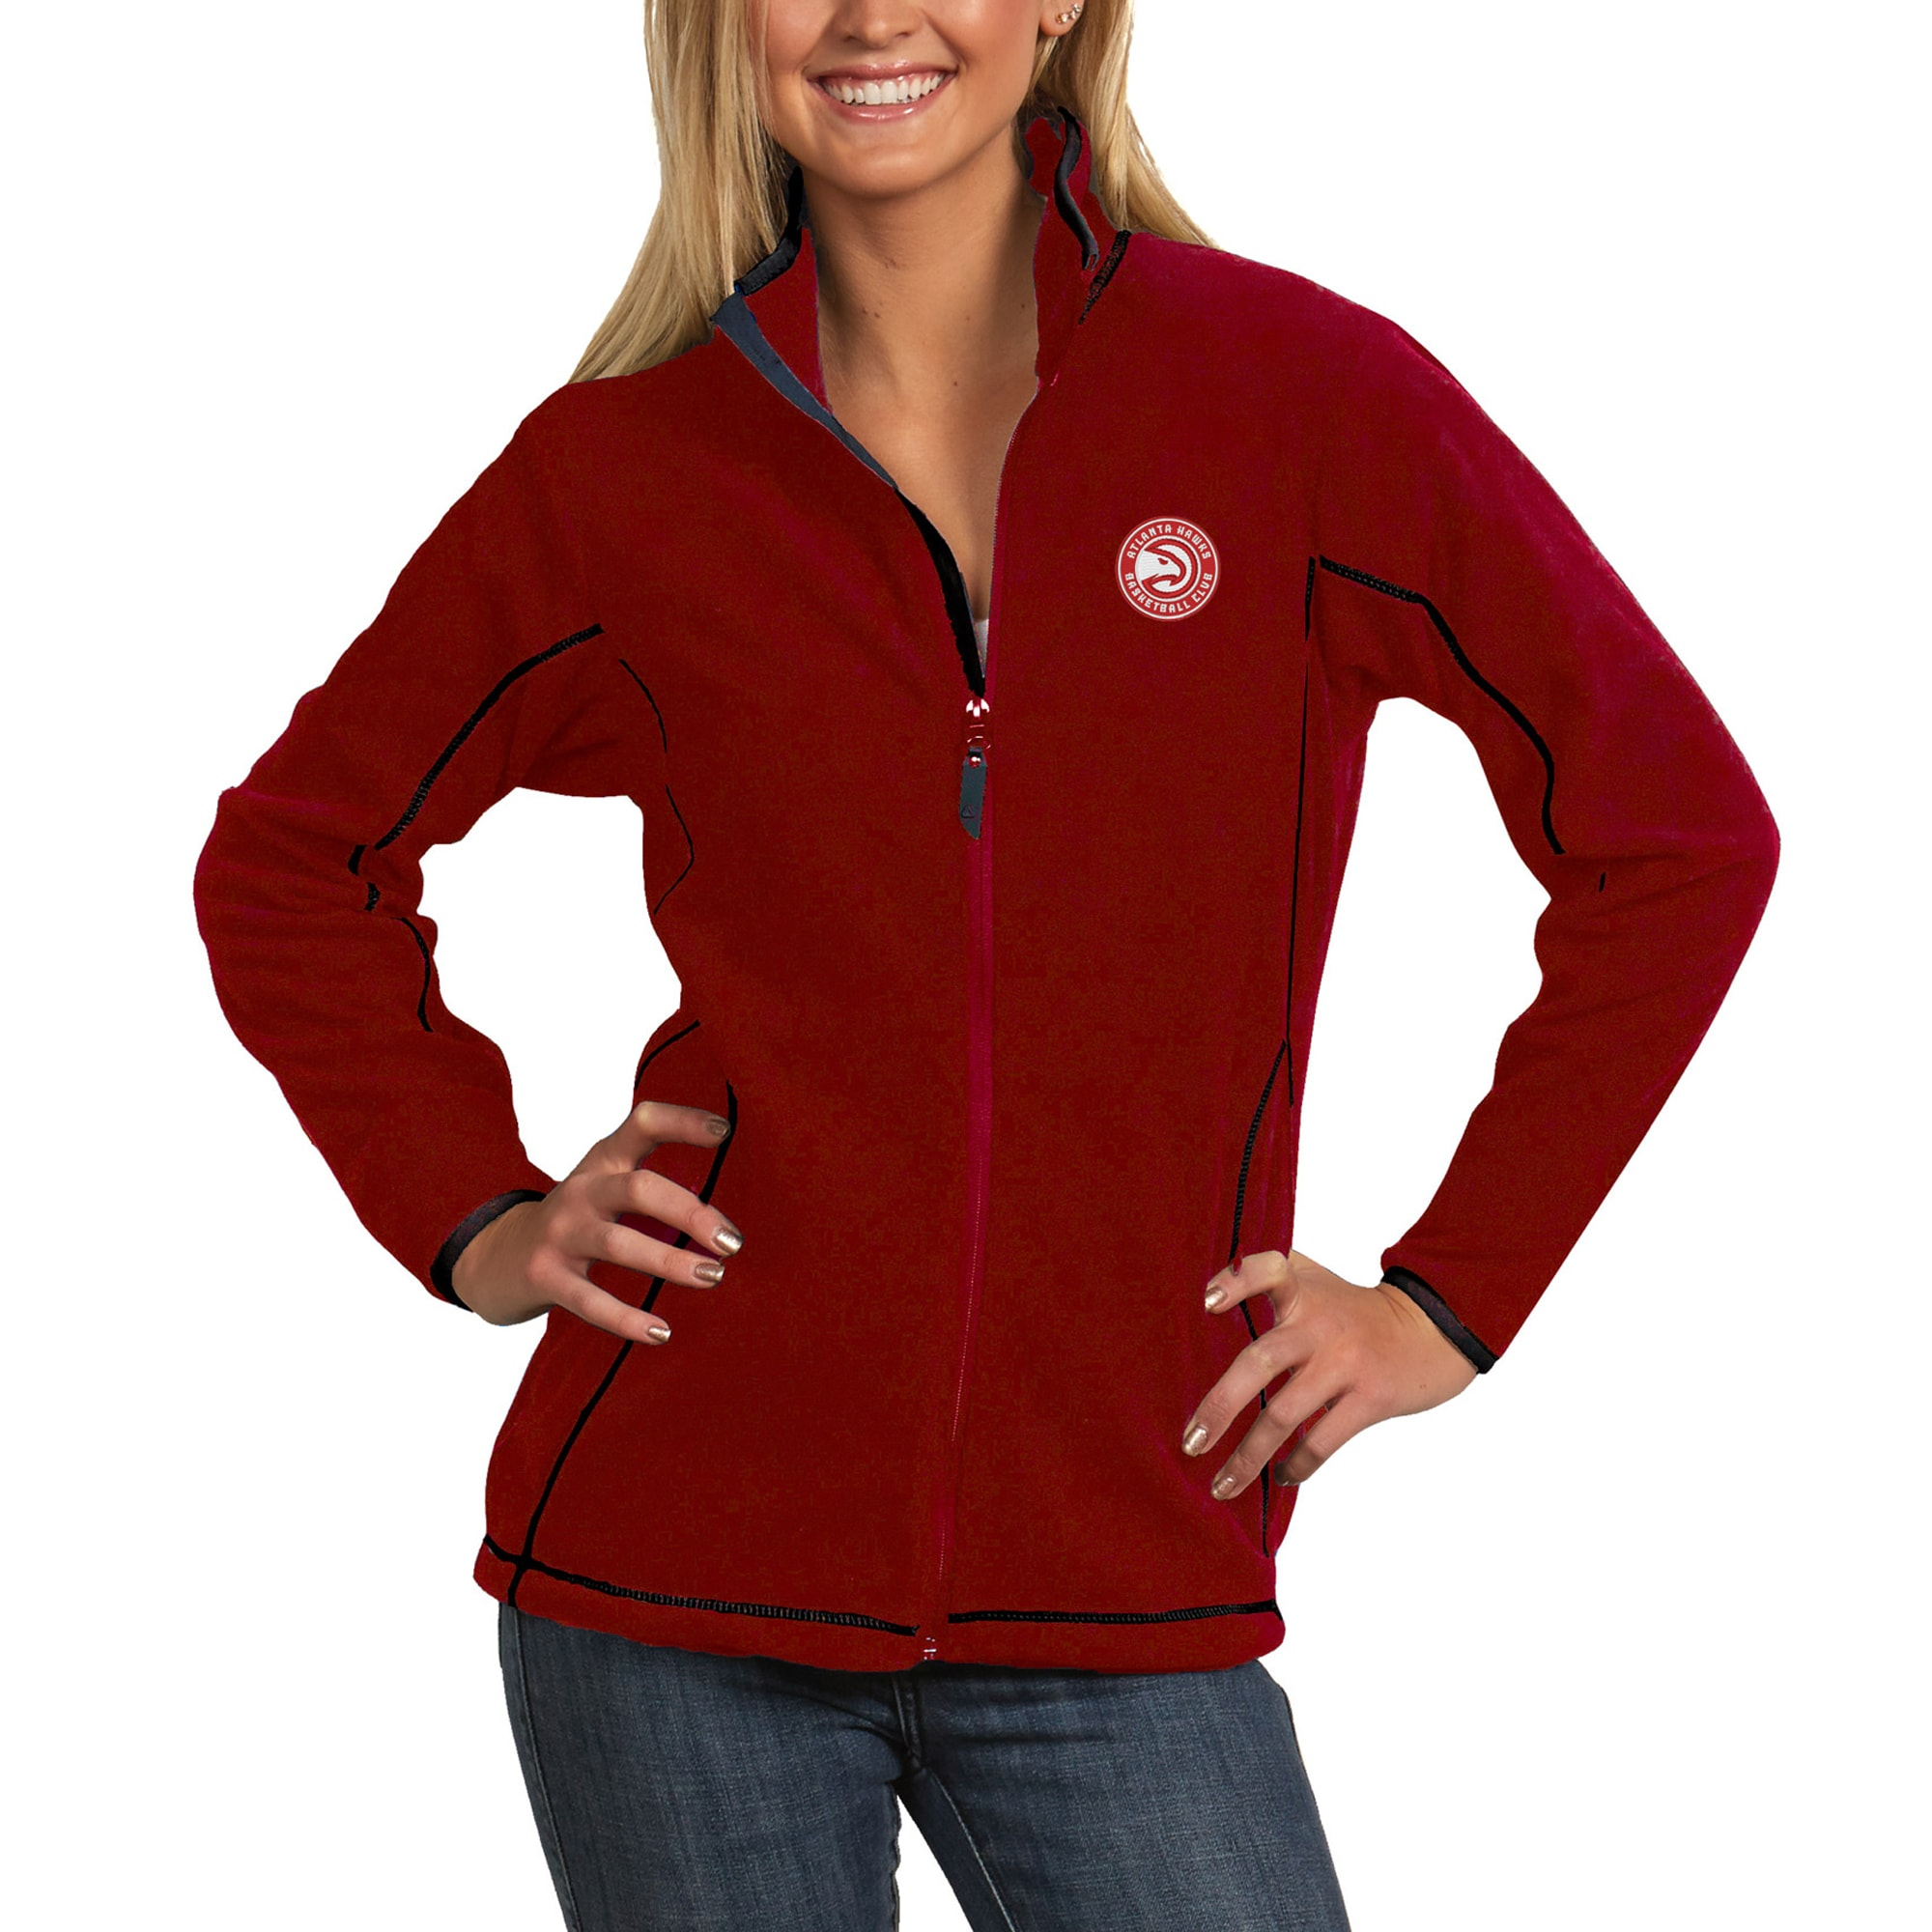 Atlanta Hawks Antigua Women's Ice Full-Zip Jacket - Red